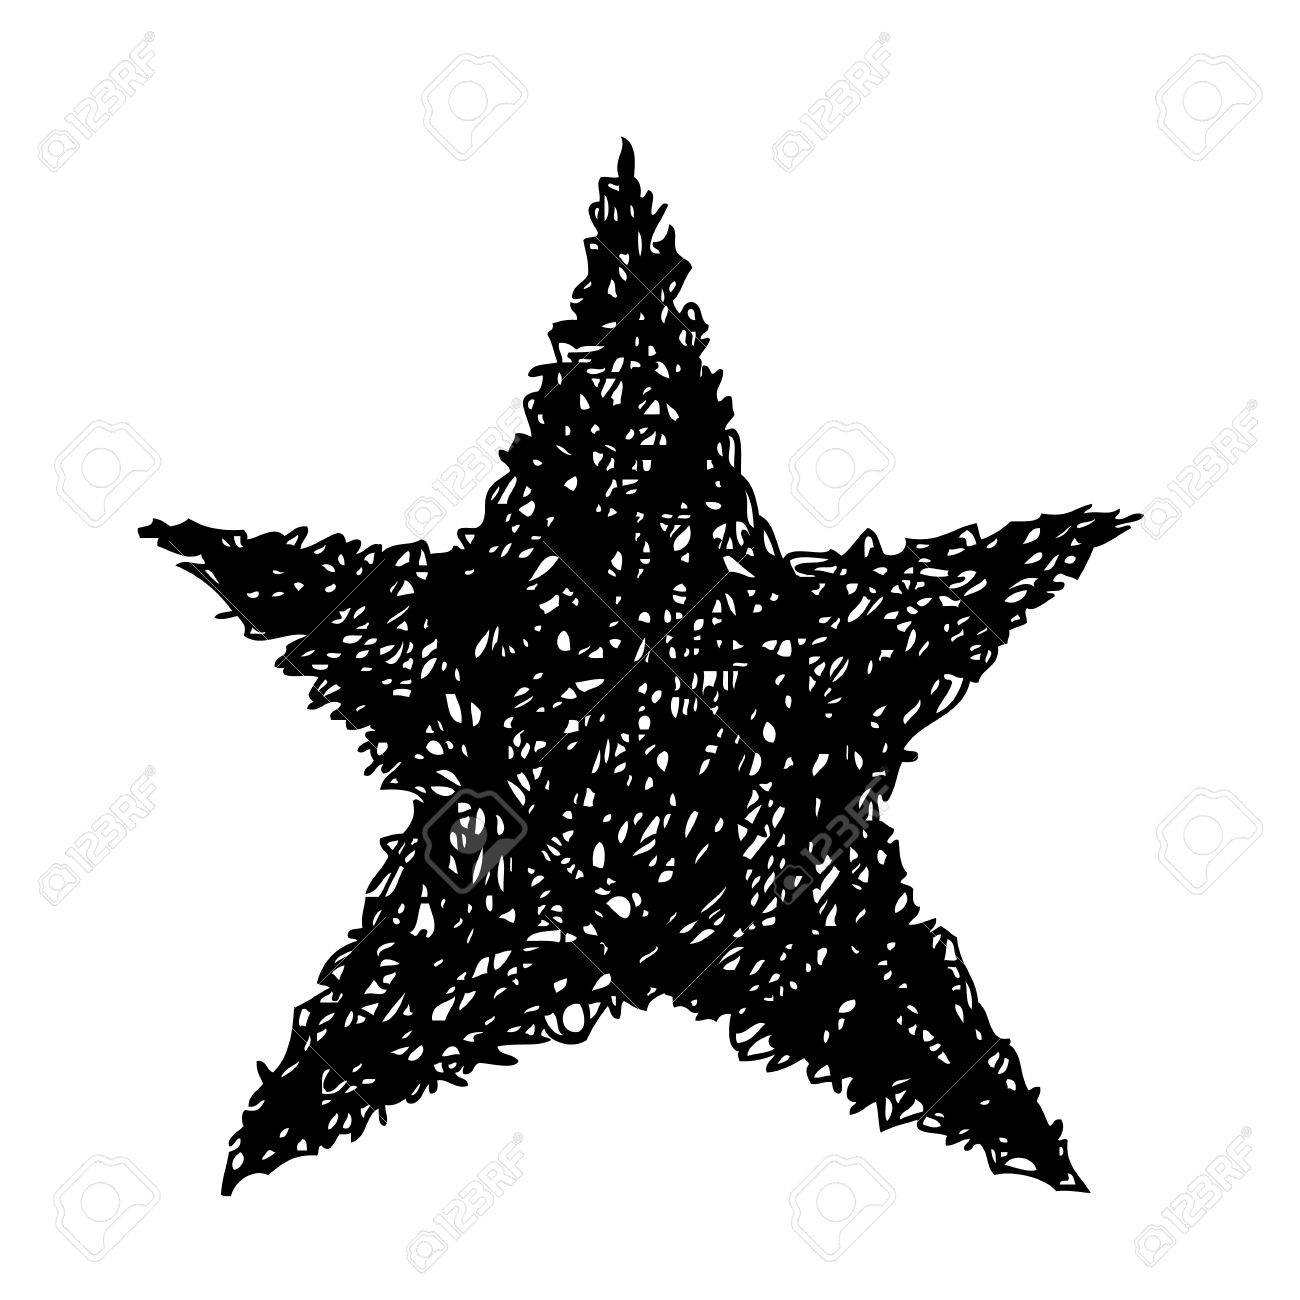 Black star hand draw isolated on white background